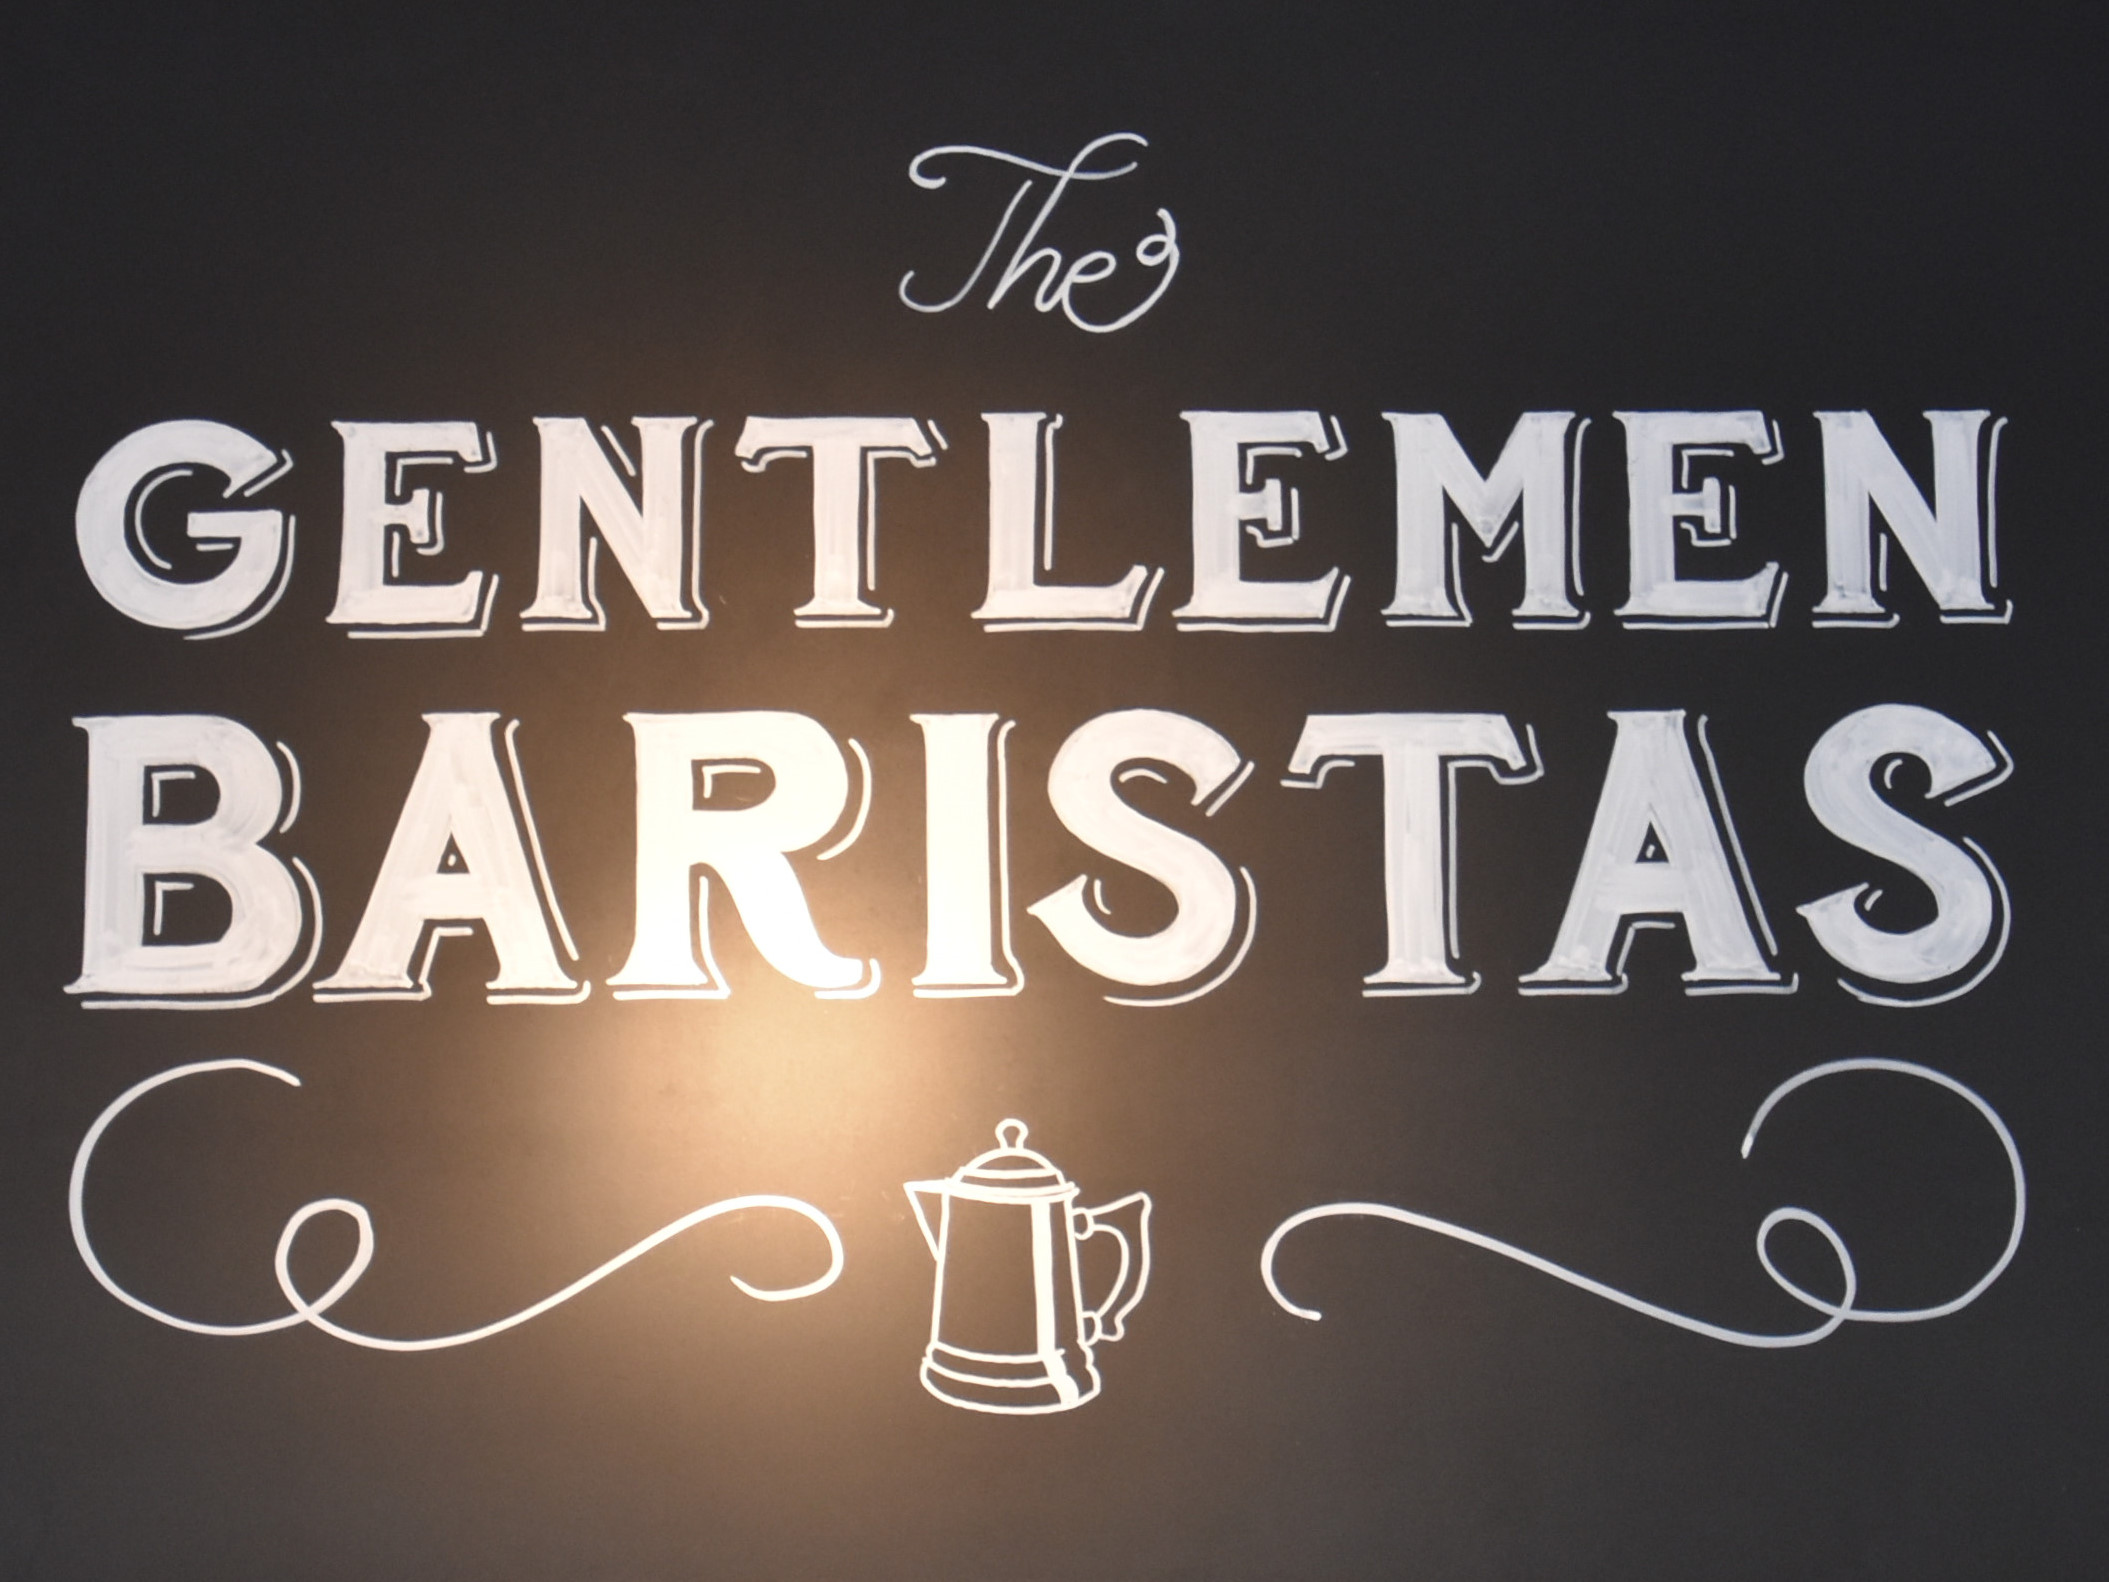 Detail of the sign hanging above the counter at The Gentlemen Baristas, The Coffee Store.